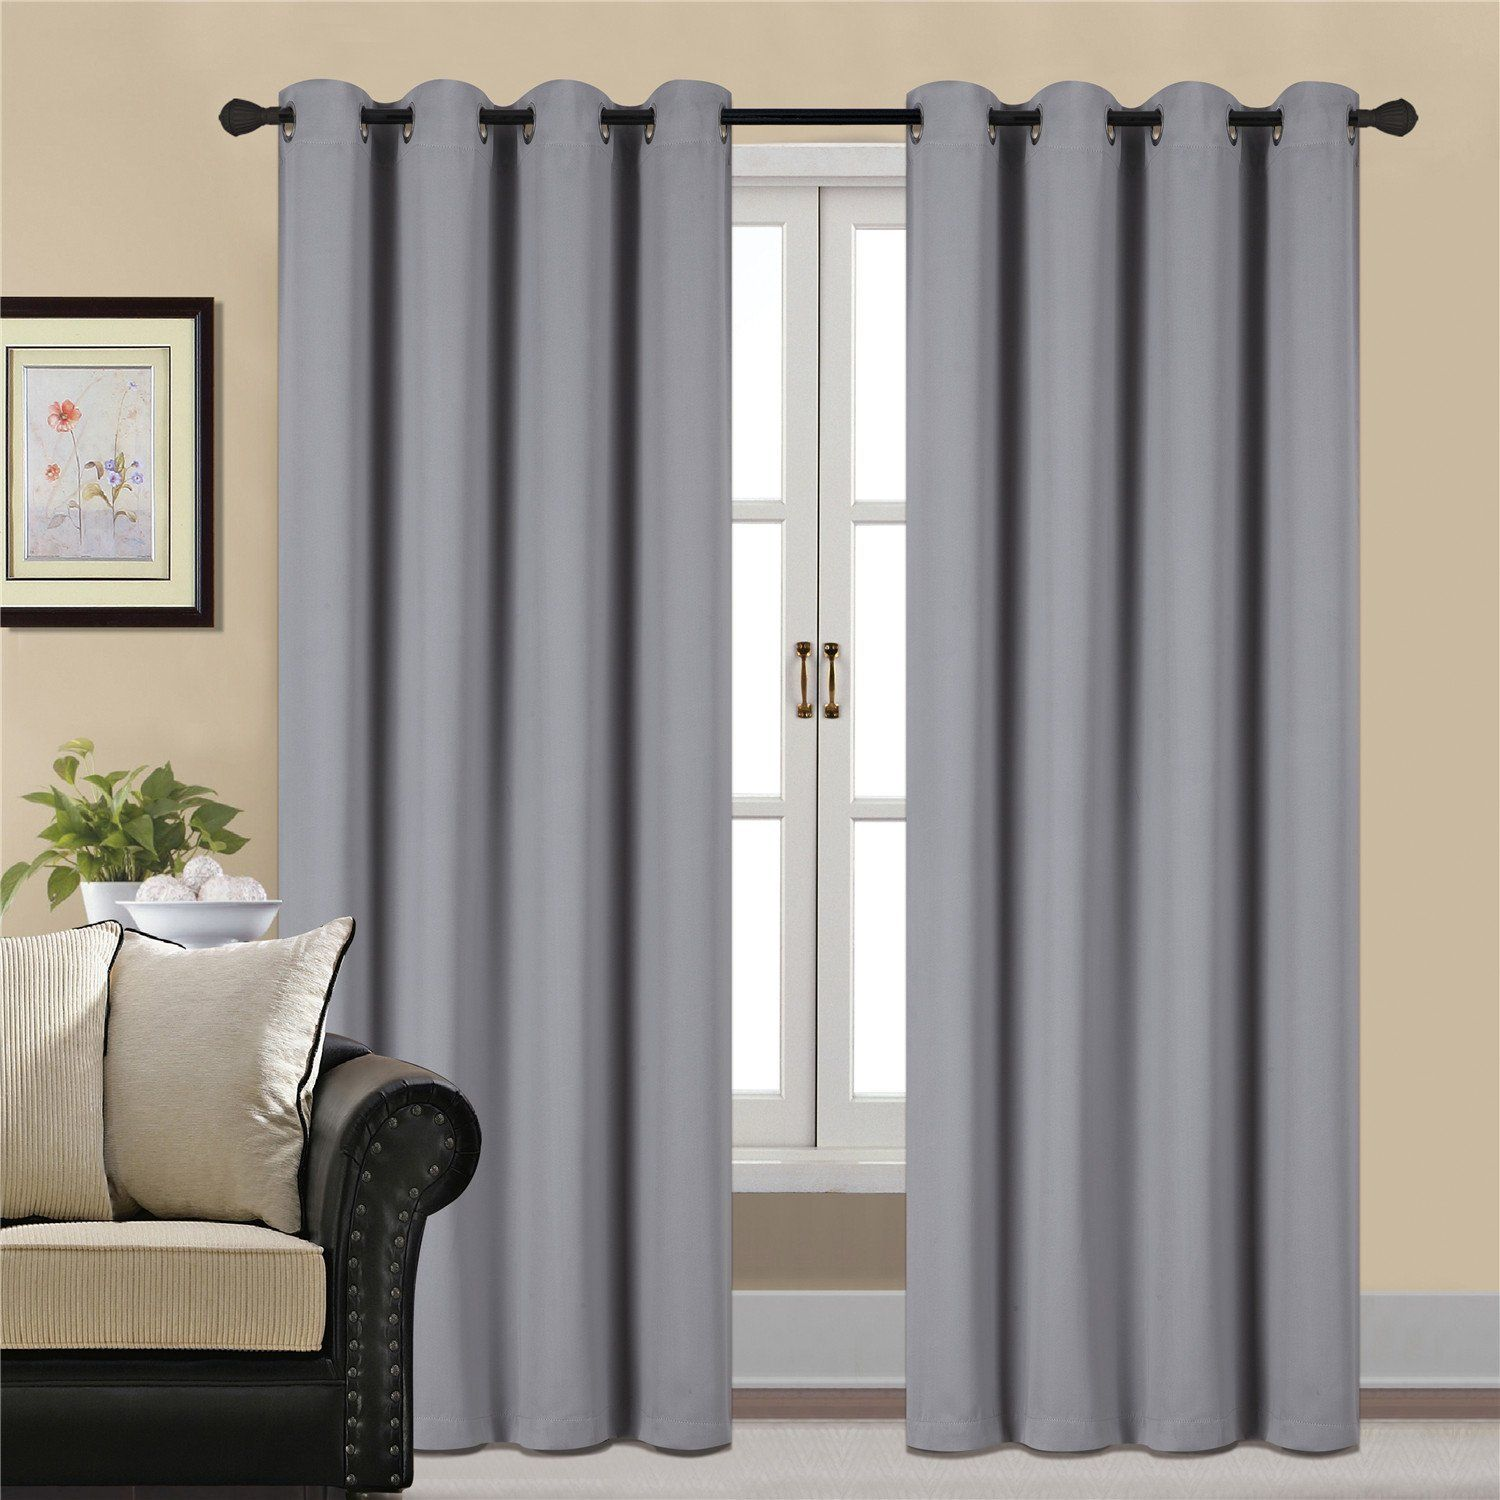 thermal curtain insulated of darkening blackout deconovo burgundy curtains for room living window luxury grommet